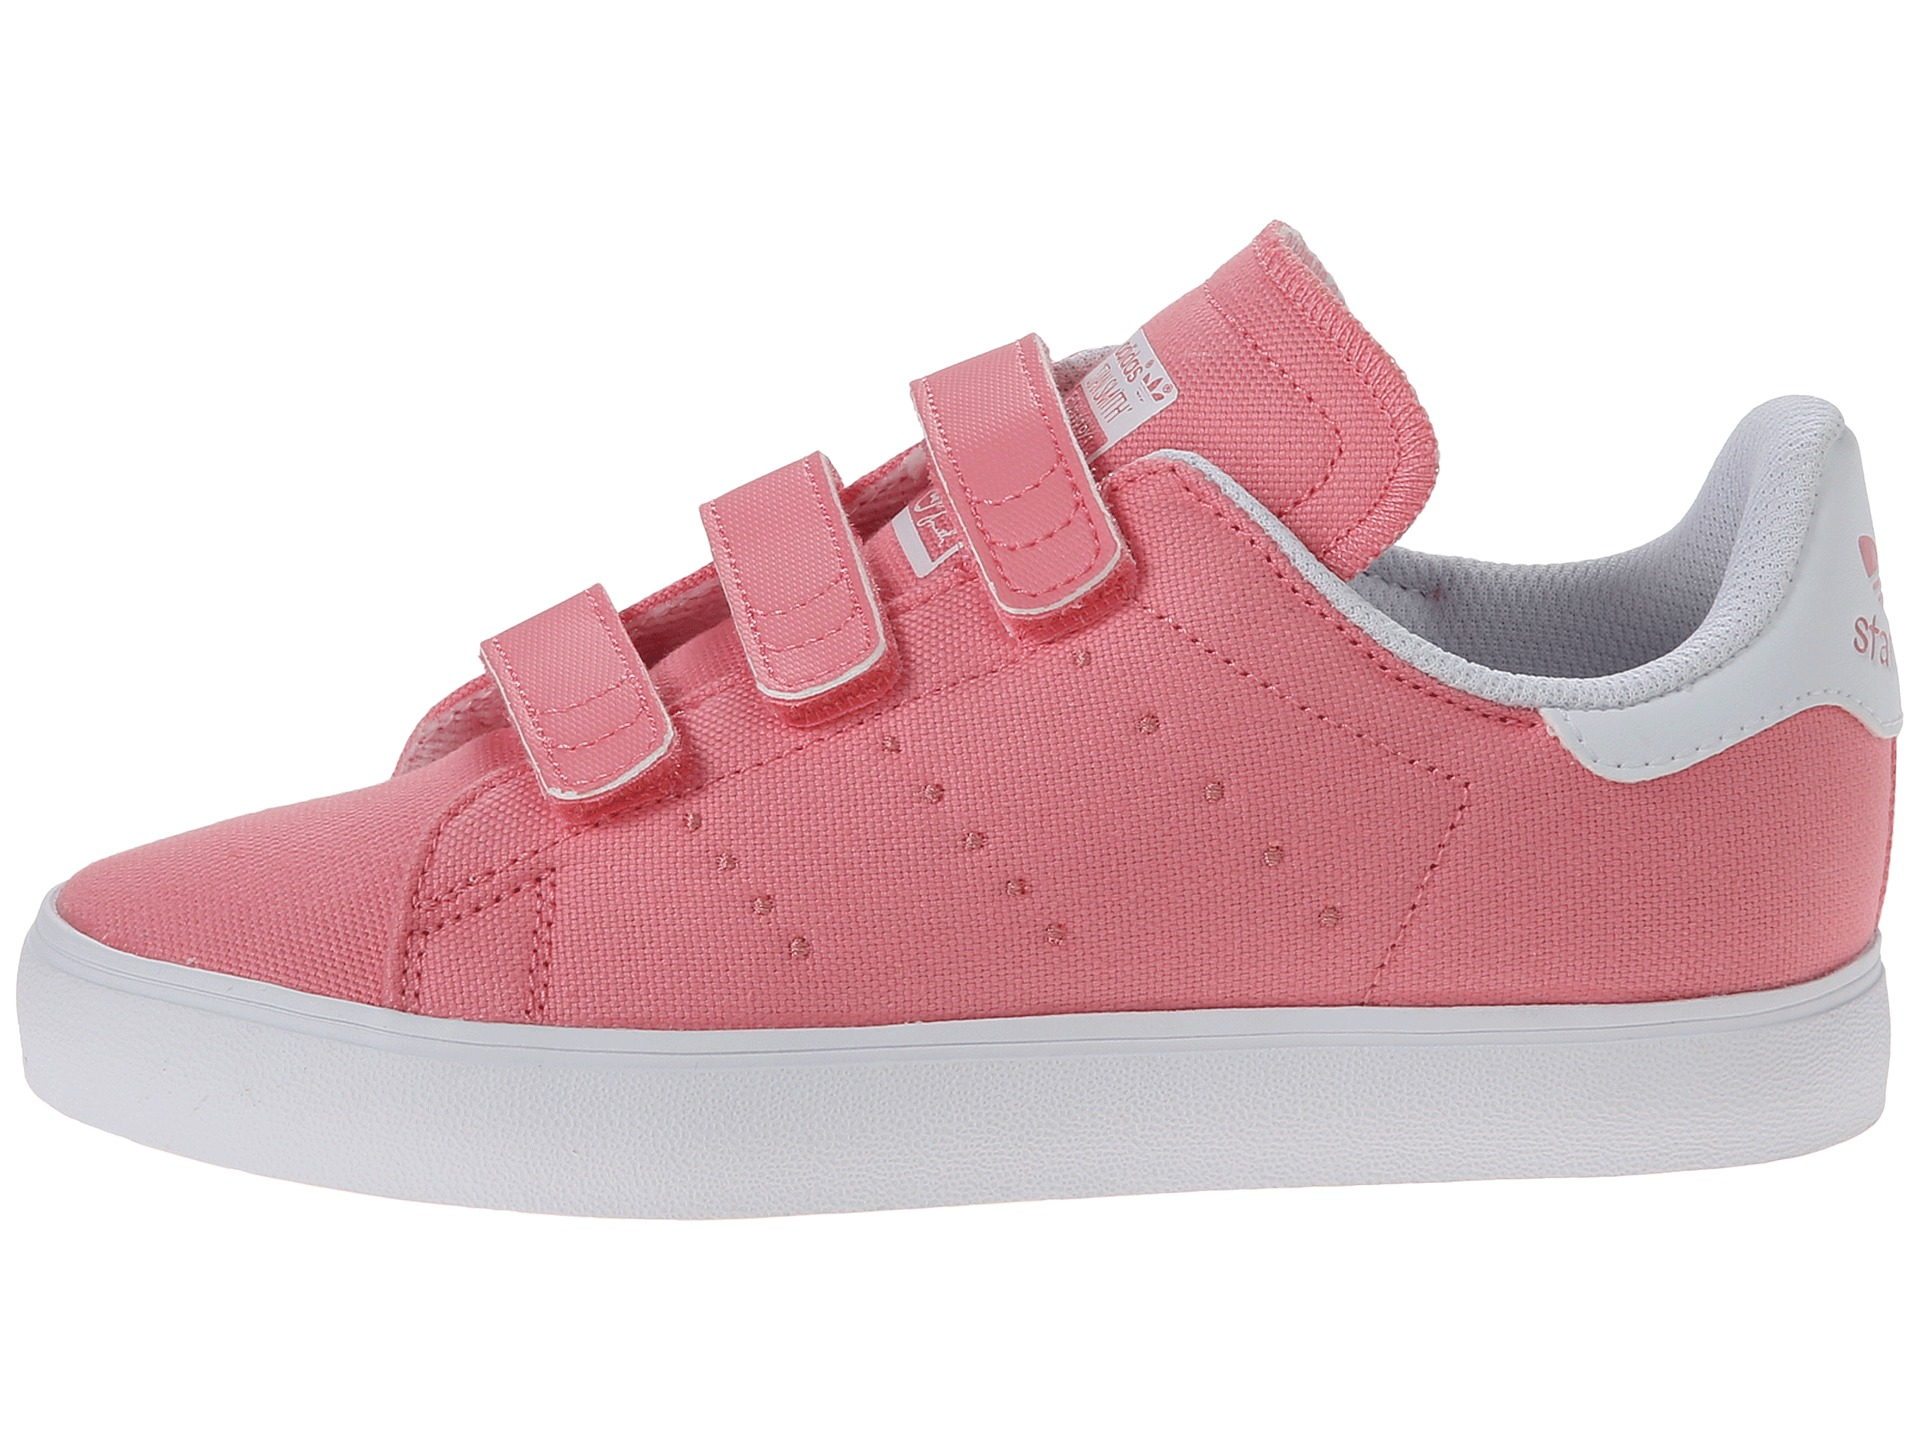 stan smith adidas for kids adidas originals stan smith trainers. Black Bedroom Furniture Sets. Home Design Ideas